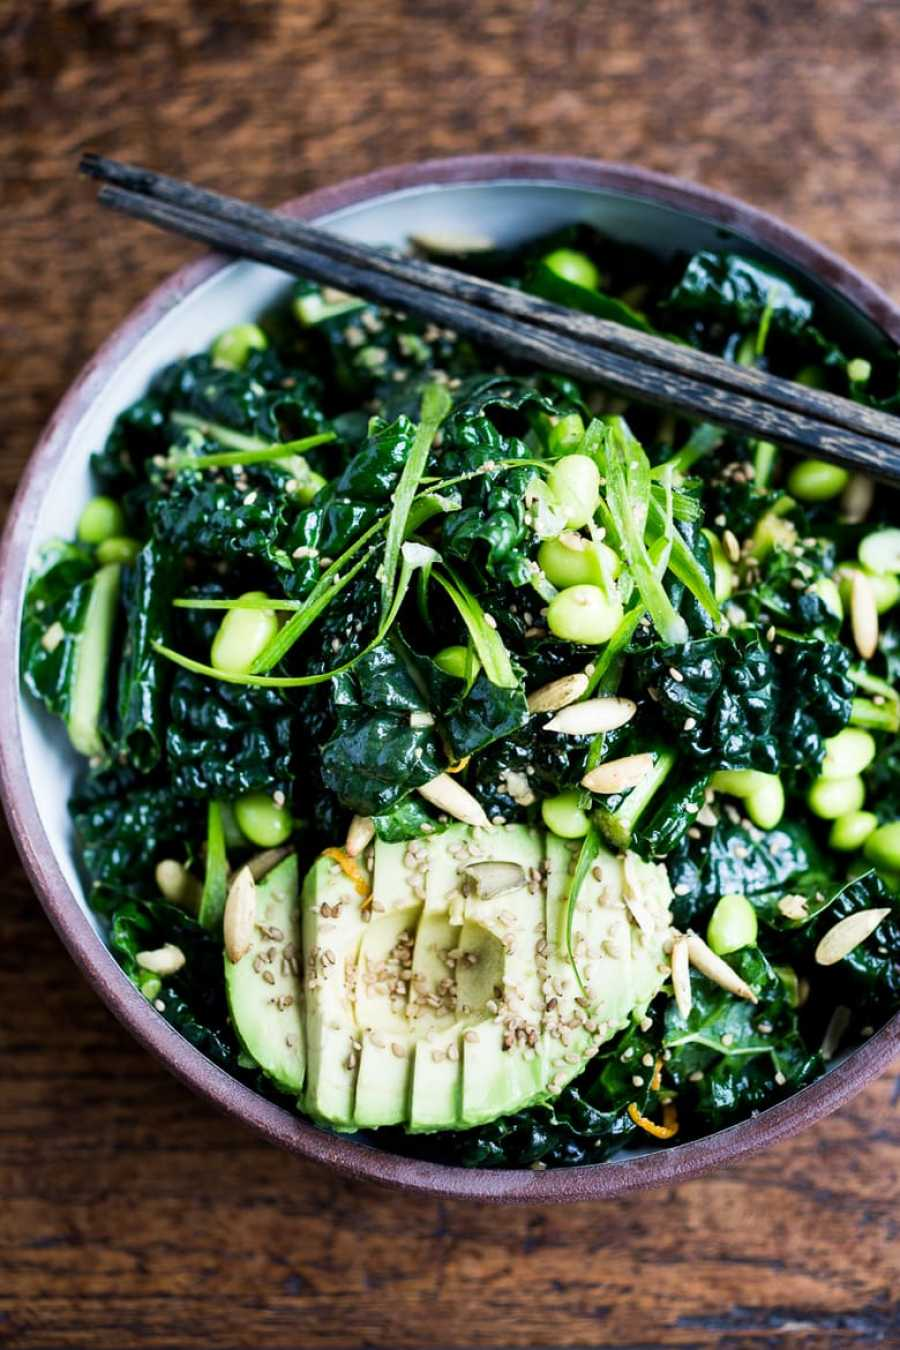 EAT CLEAN with these 20 simple Plant-Based Meals   Emerald Kale Salad w/ Sesame Ginger Dressing, Avocado, edamame, scallions, pumpkin seeds and orange zest. Add seared tofu and turn it into dinner!   www.feastingathome.com #vegan #kale #salad #glutenfree